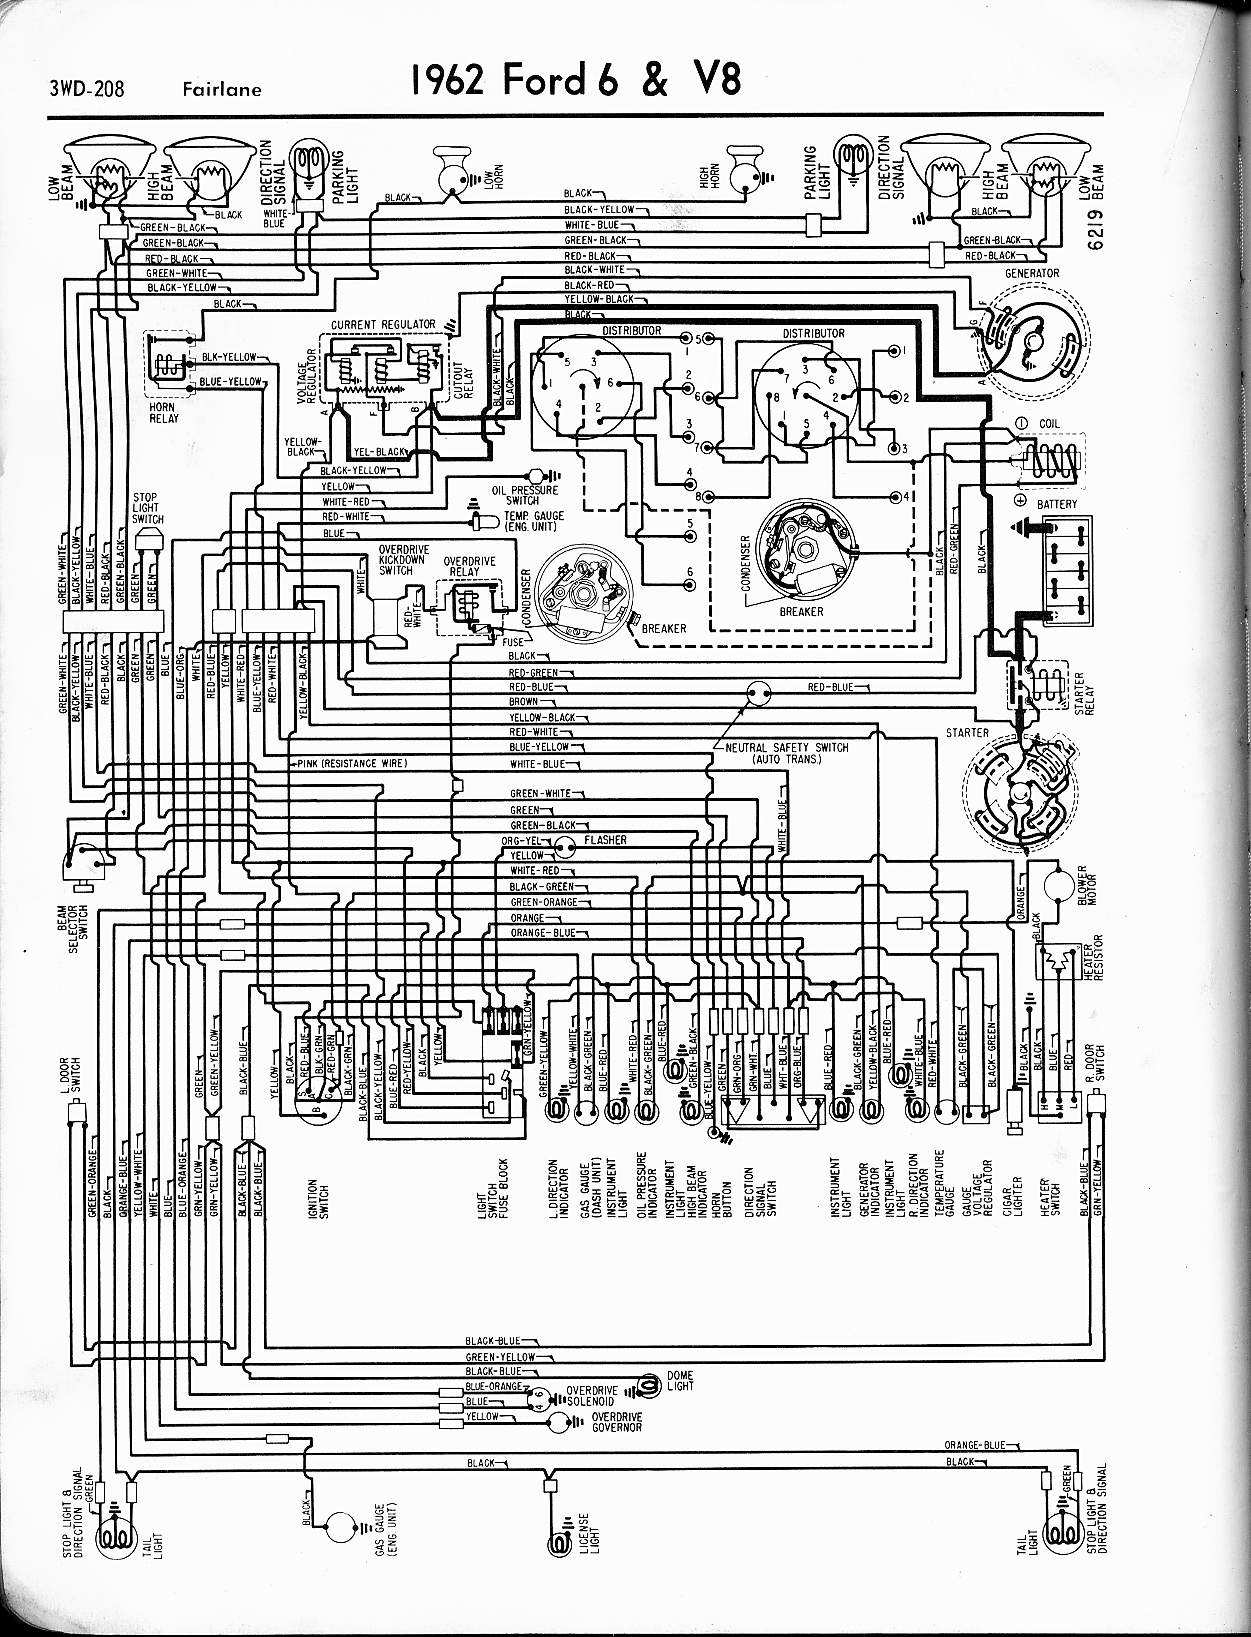 MWire5765 208 57 65 ford wiring diagrams  at edmiracle.co